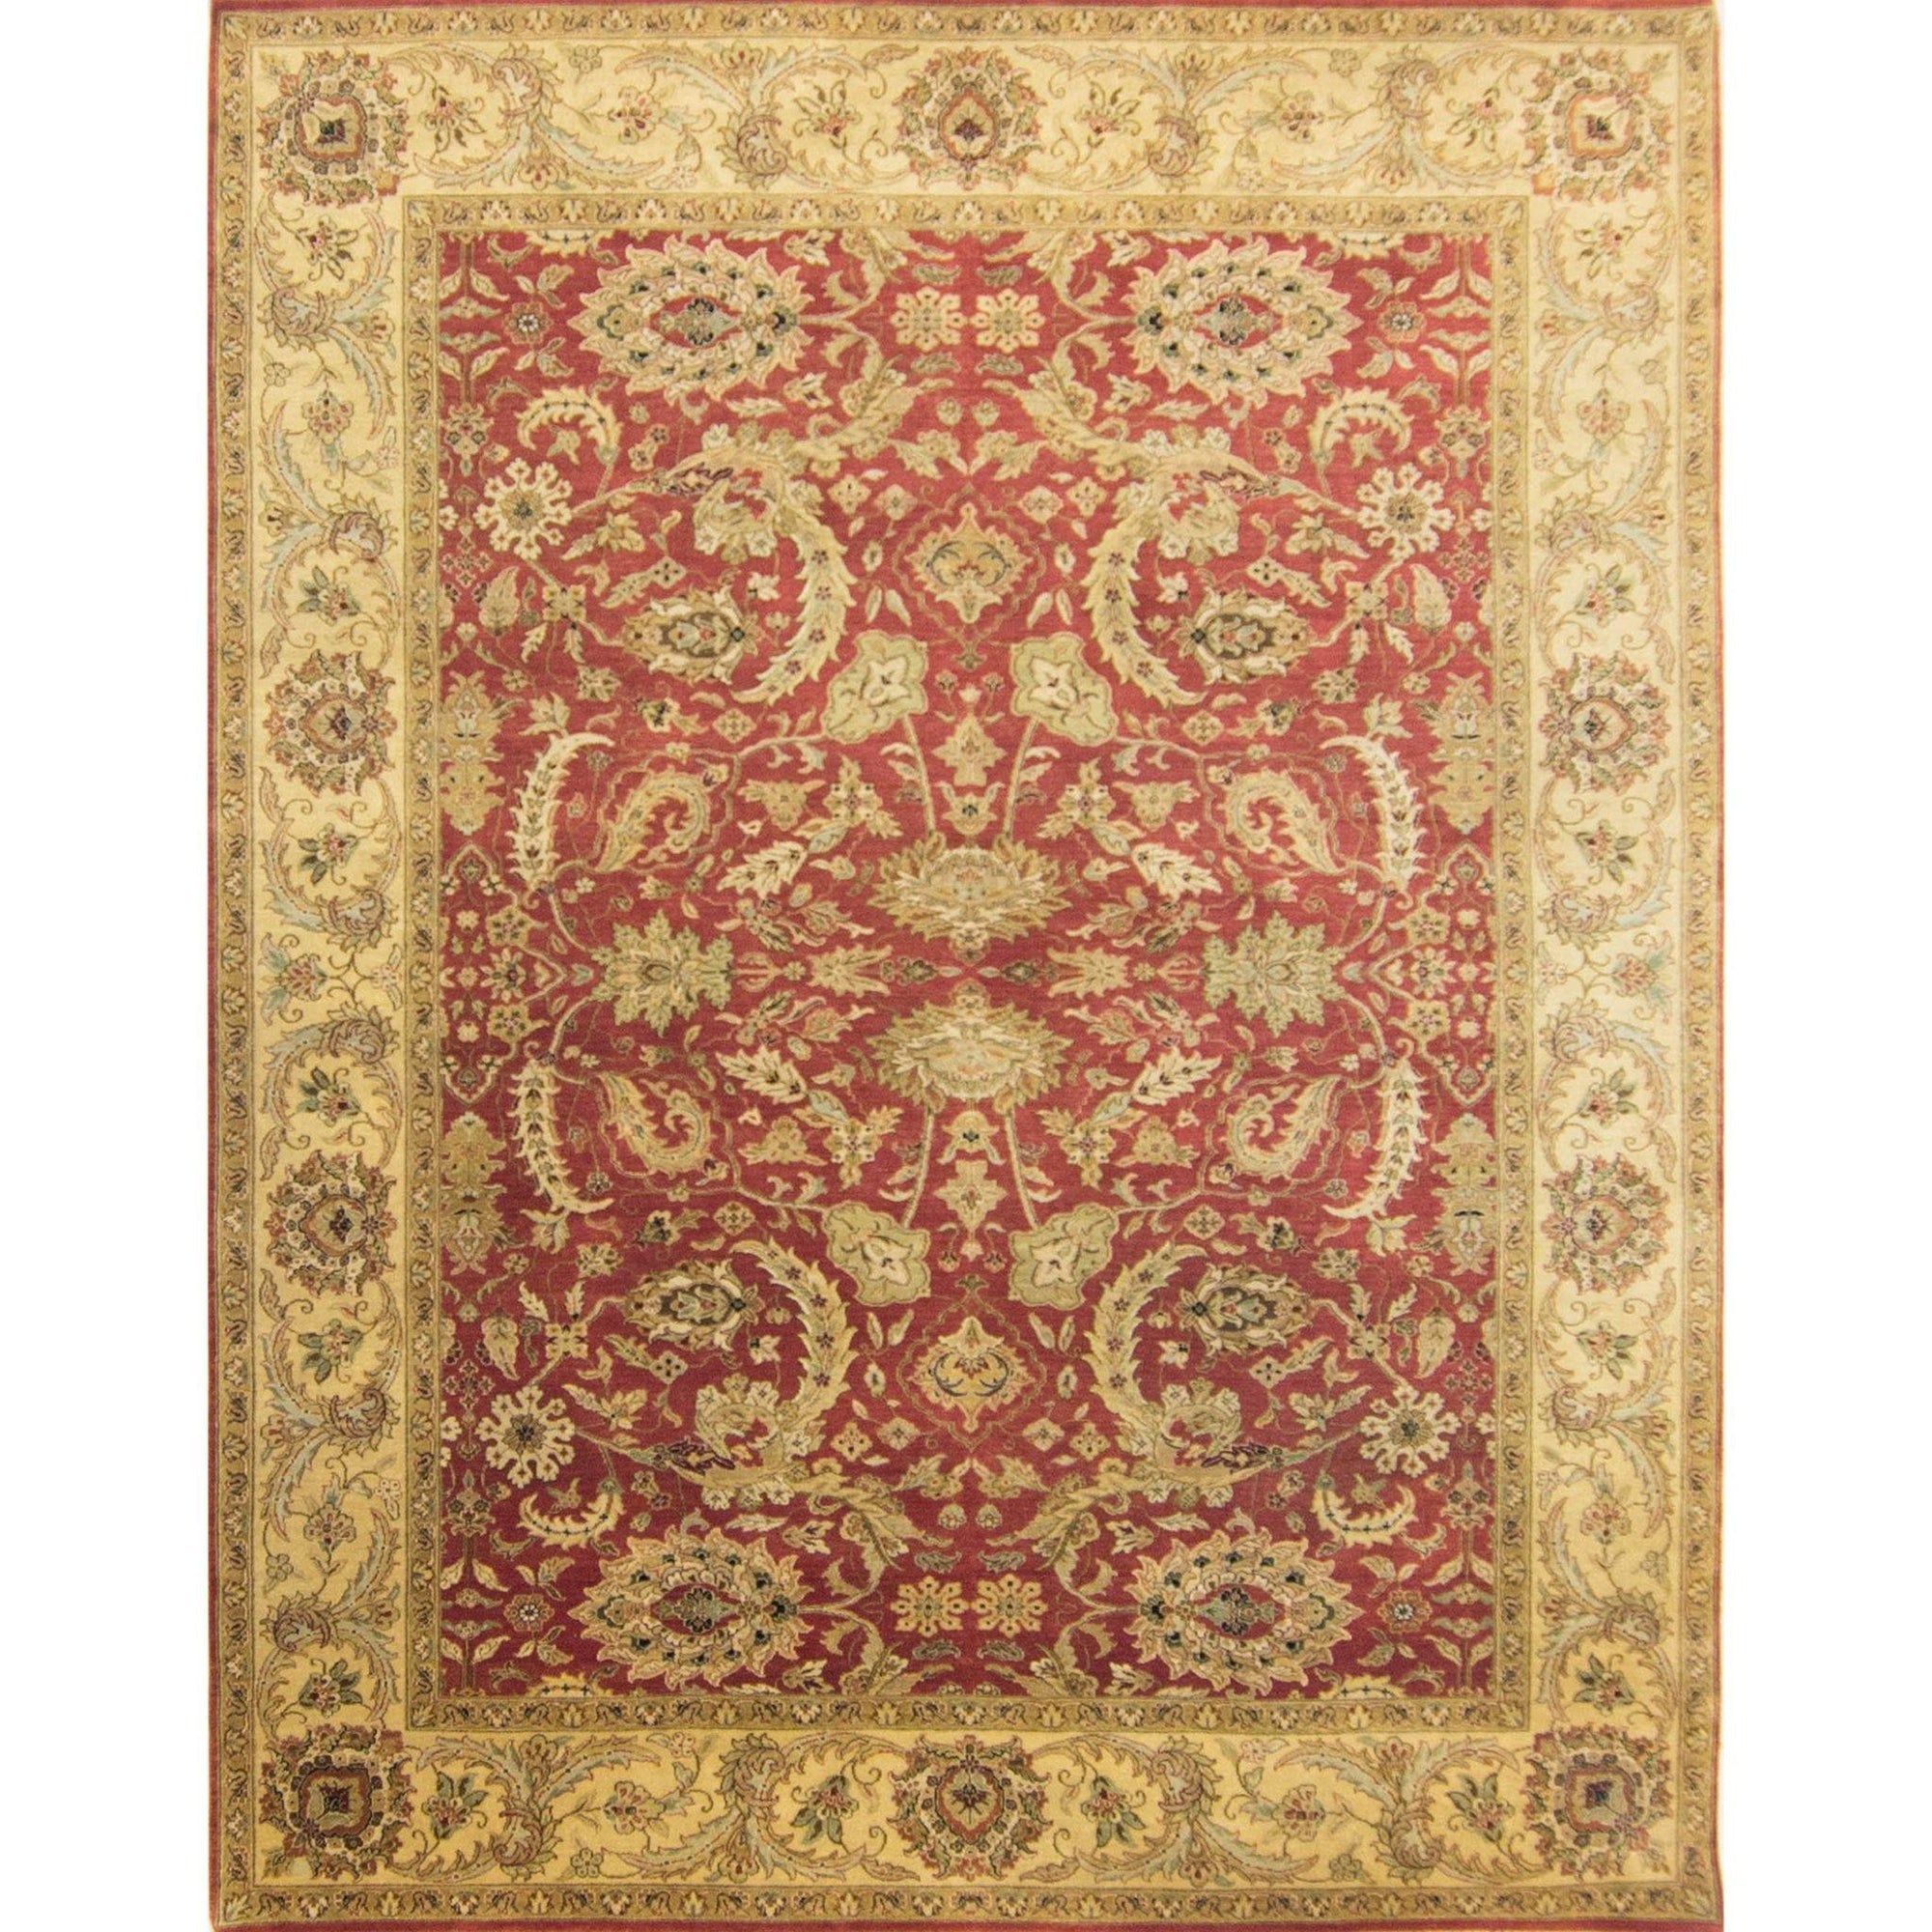 Fine Hand-knotted Wool Sarough Rug 244cm x 2.97cm Persian-Rug | House-of-Haghi | NewMarket | Auckland | NZ | Handmade Persian Rugs | Hand Knotted Persian Rugs